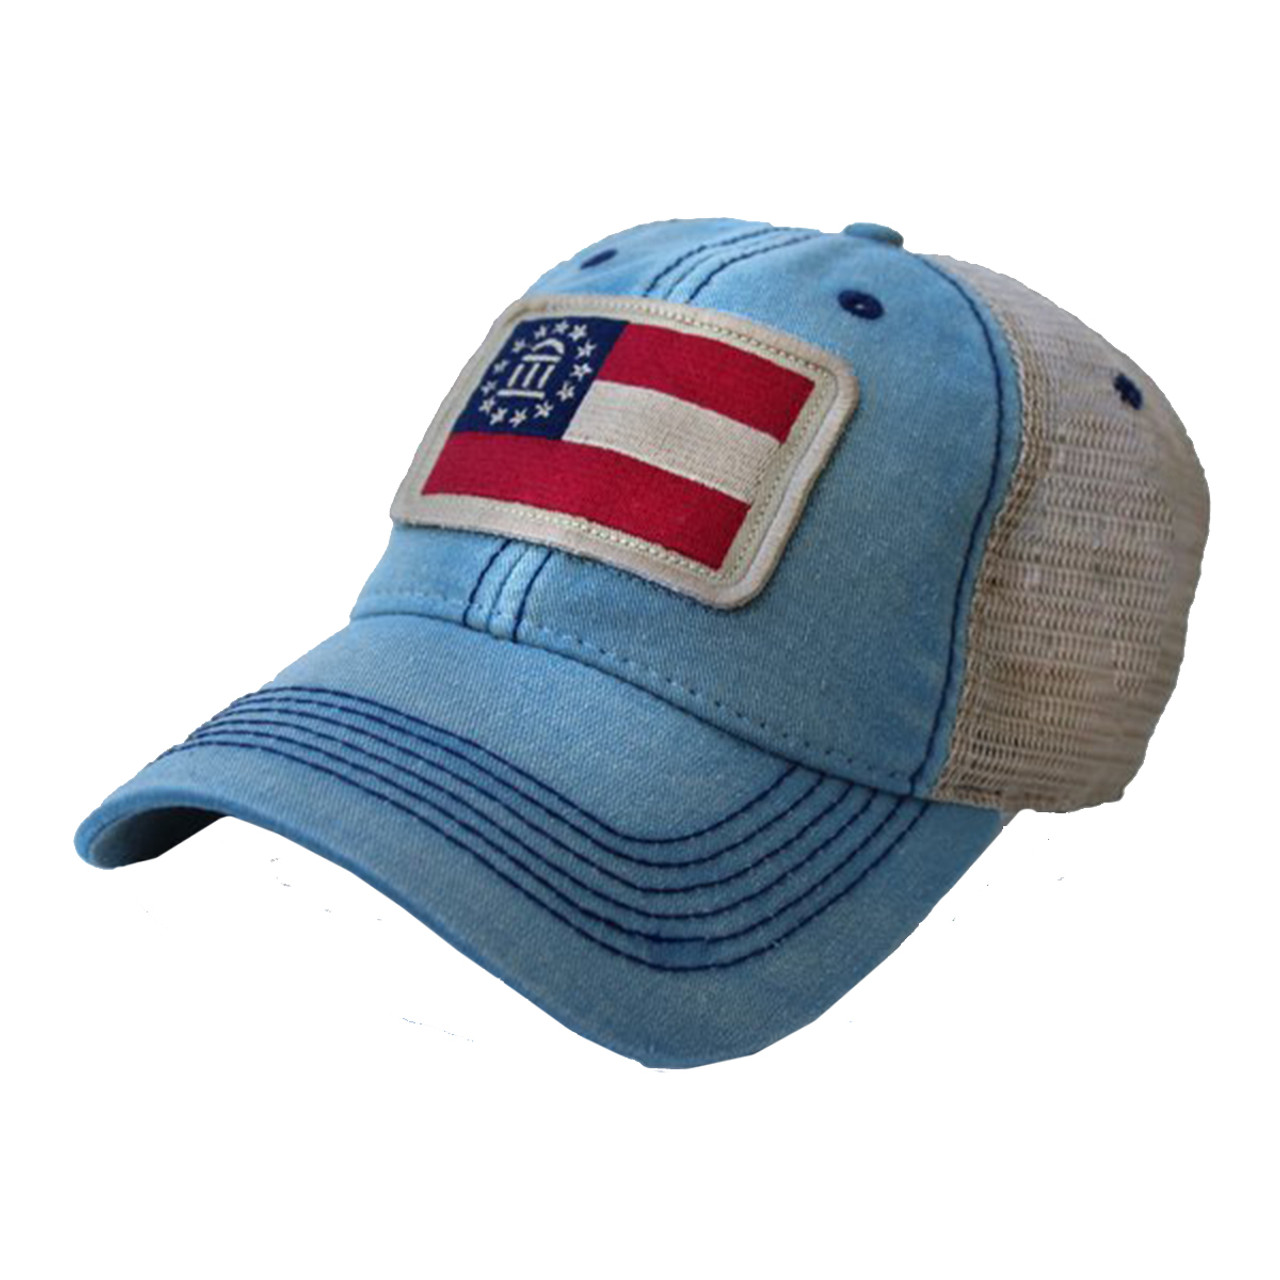 State Legacy Revival Georgia Flag Patch Trucker Hat - Trenz Shirt Company 685cb275102b